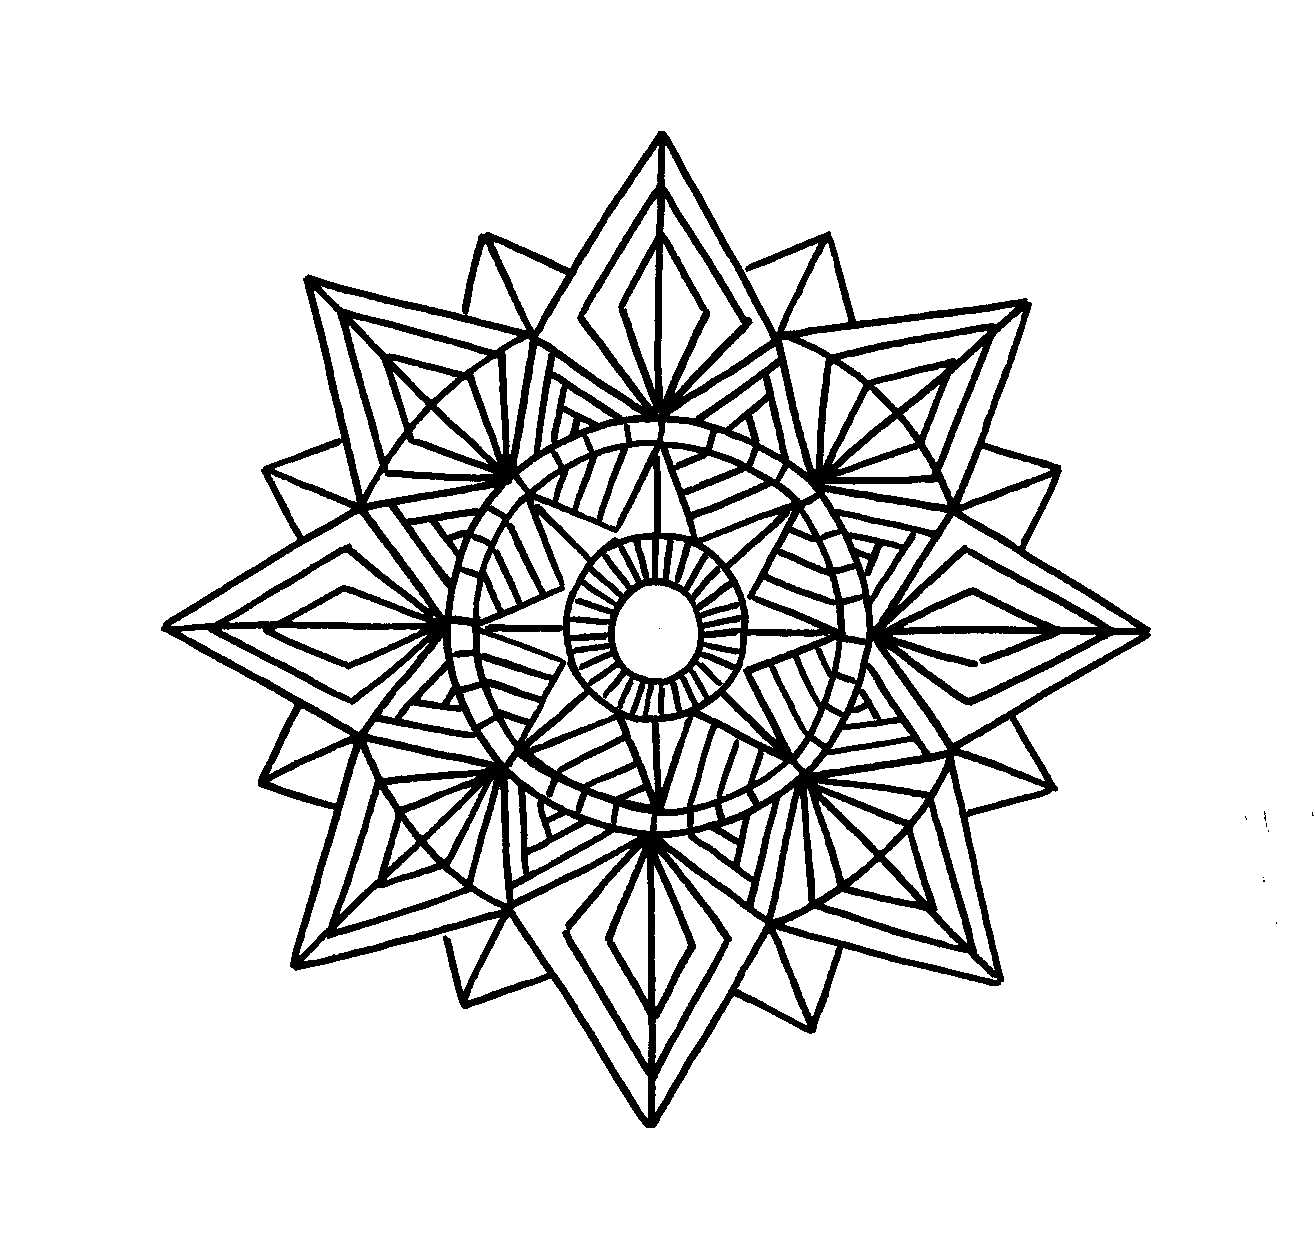 shapes images for coloring free printable geometric coloring pages for kids for shapes coloring images